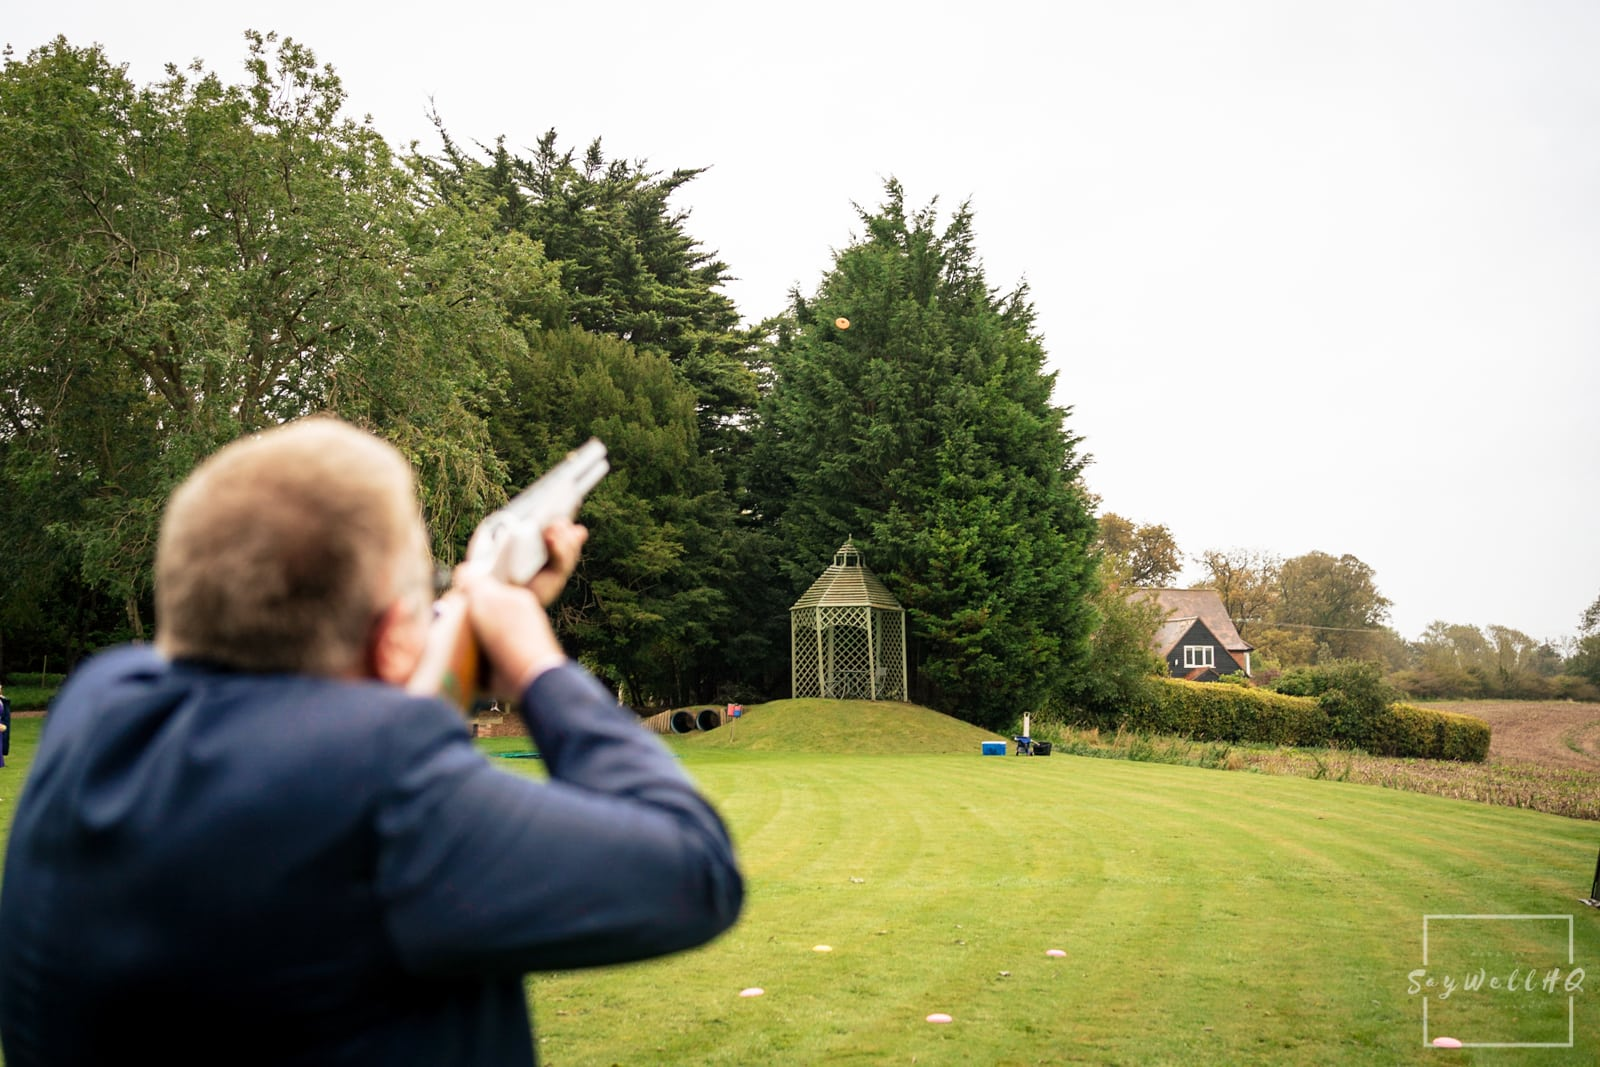 Lincoln Wedding Photography + Spilsby Church Wedding Photographer + Groom and his friends enjoy clay pigeon shooting at Skendleby Hall